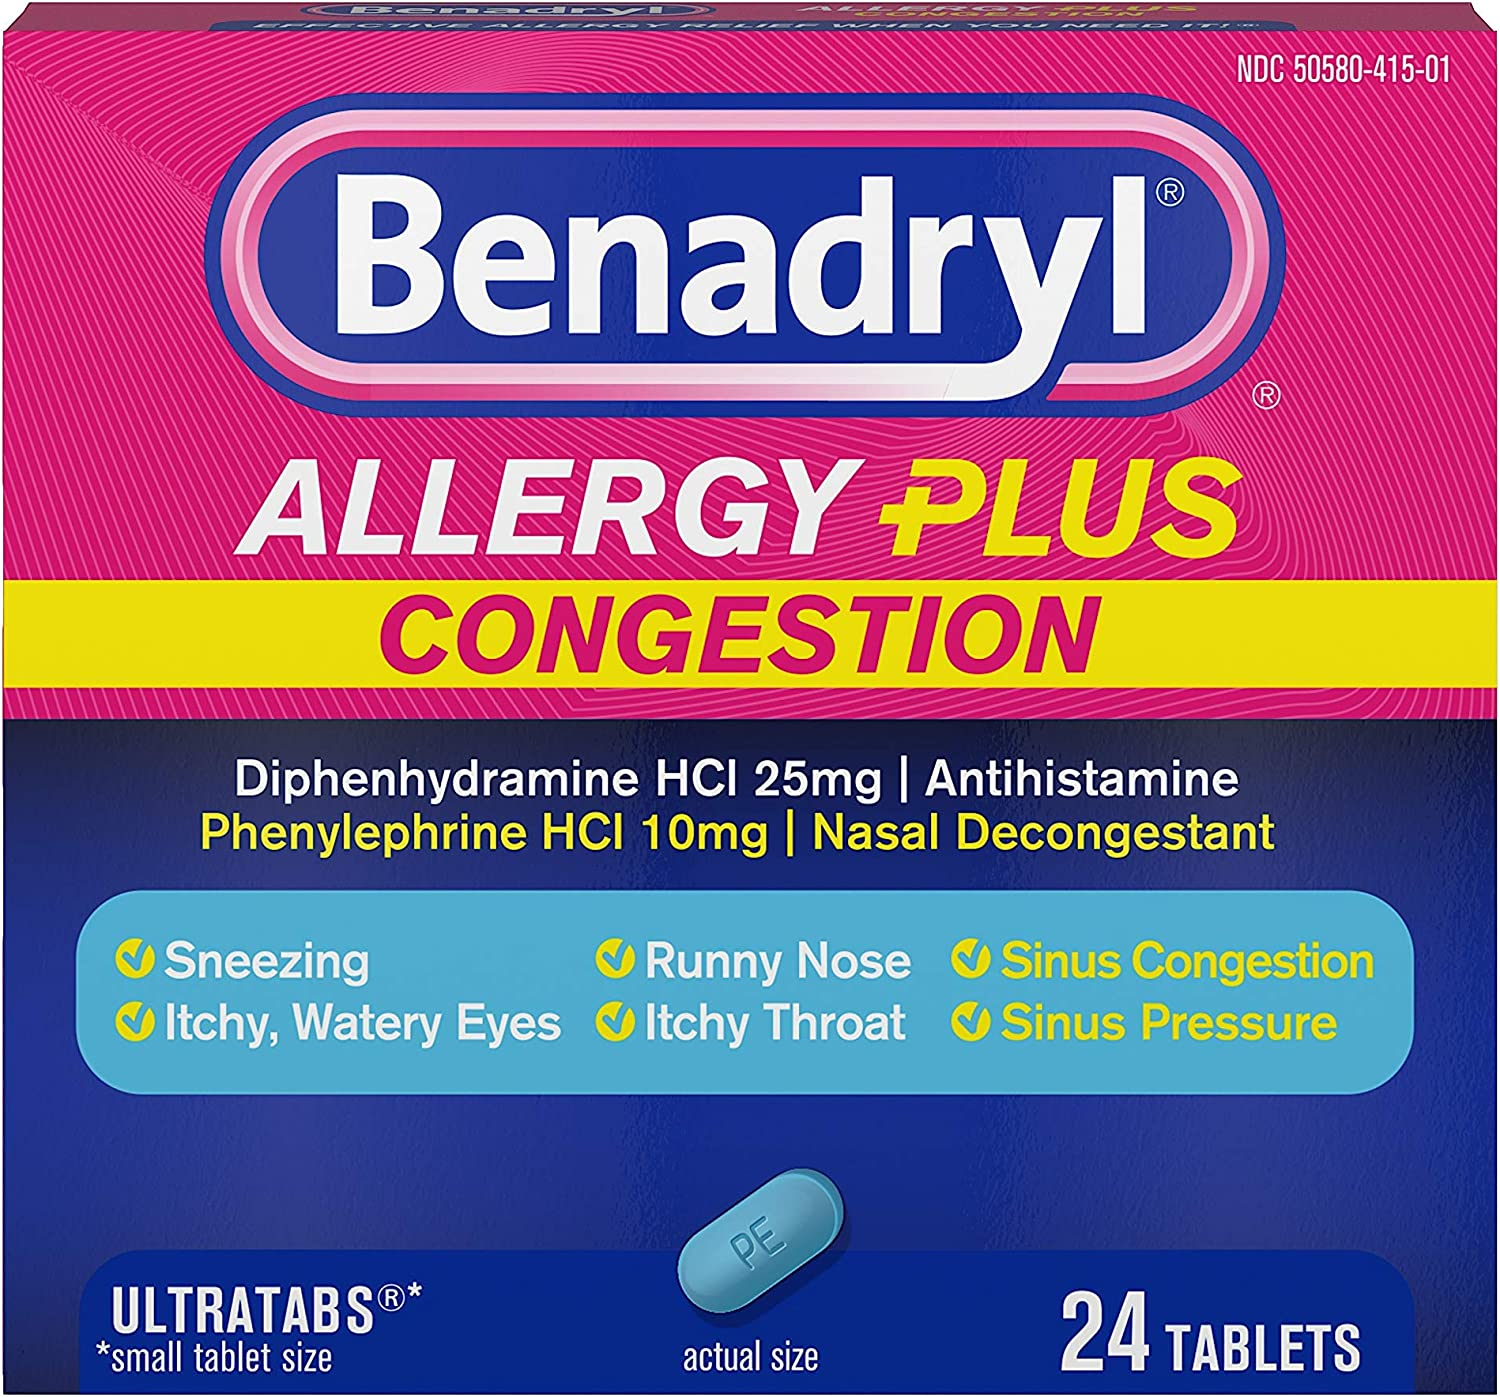 Benadryl Allergy Plus Congestion Ultratabs, Allergy & Congestion Relief Medicine, 24 ct: Health & Personal Care